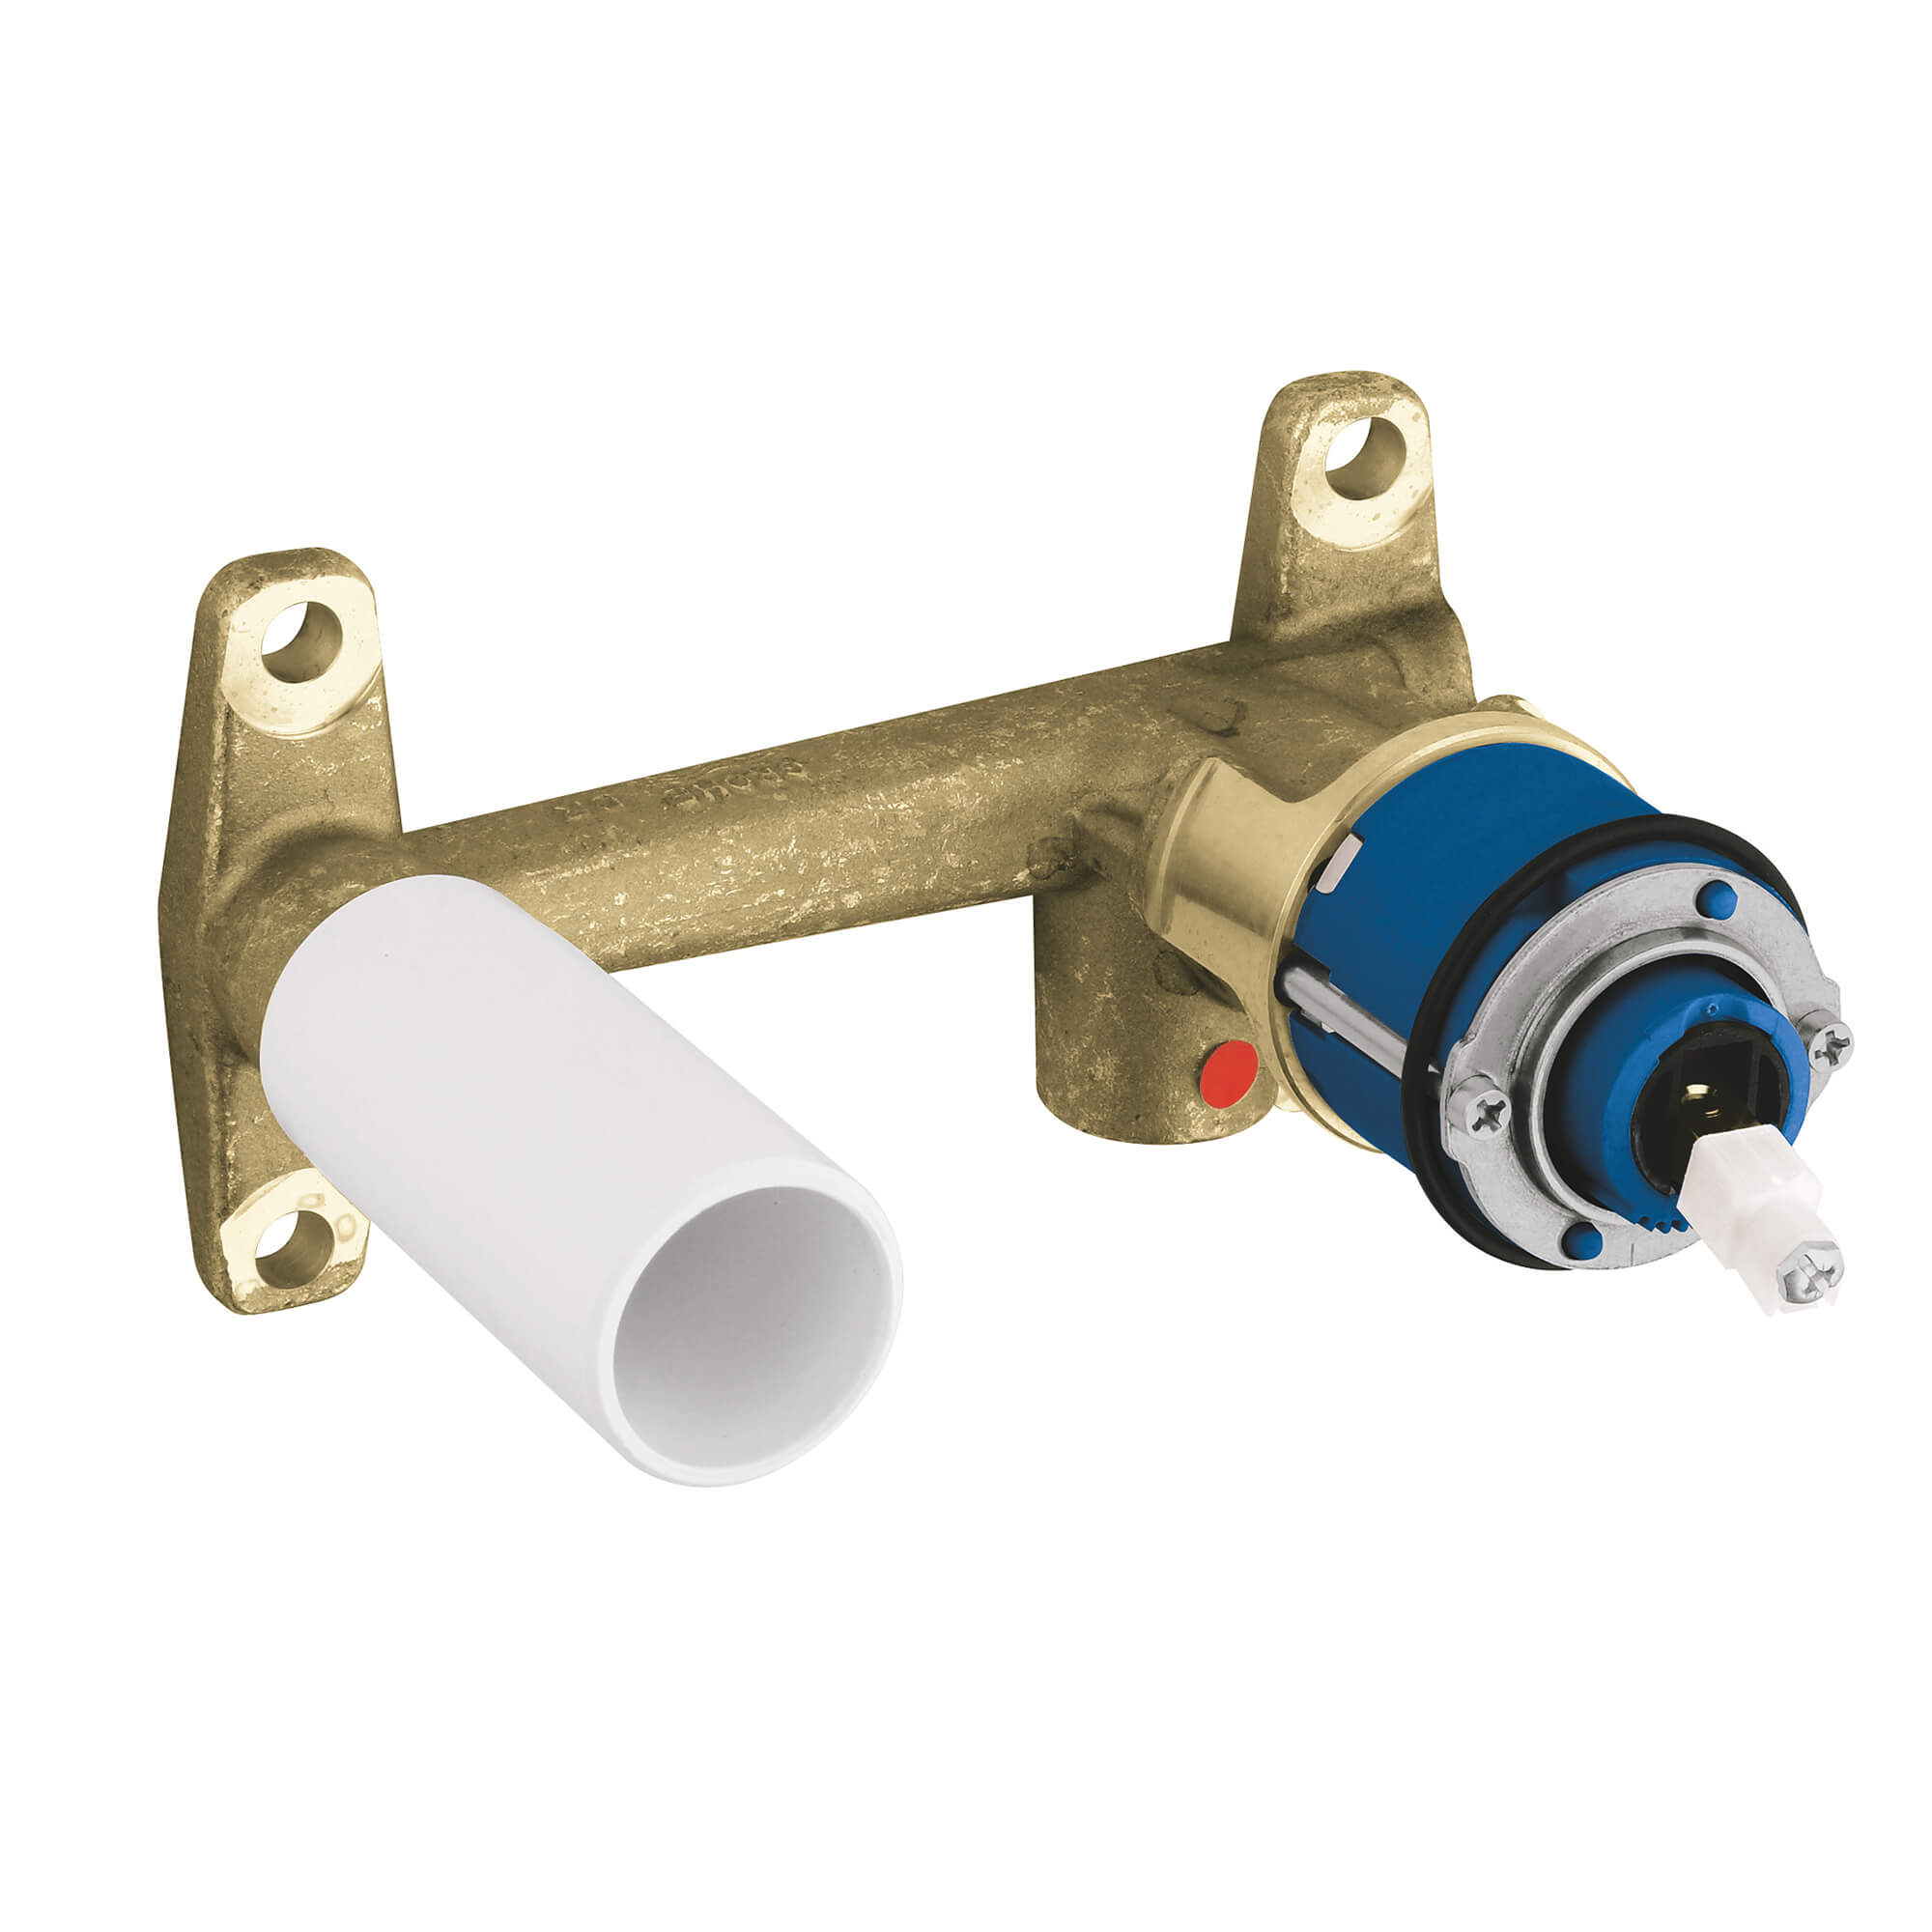 2 hole wall mount faucet rough in valve